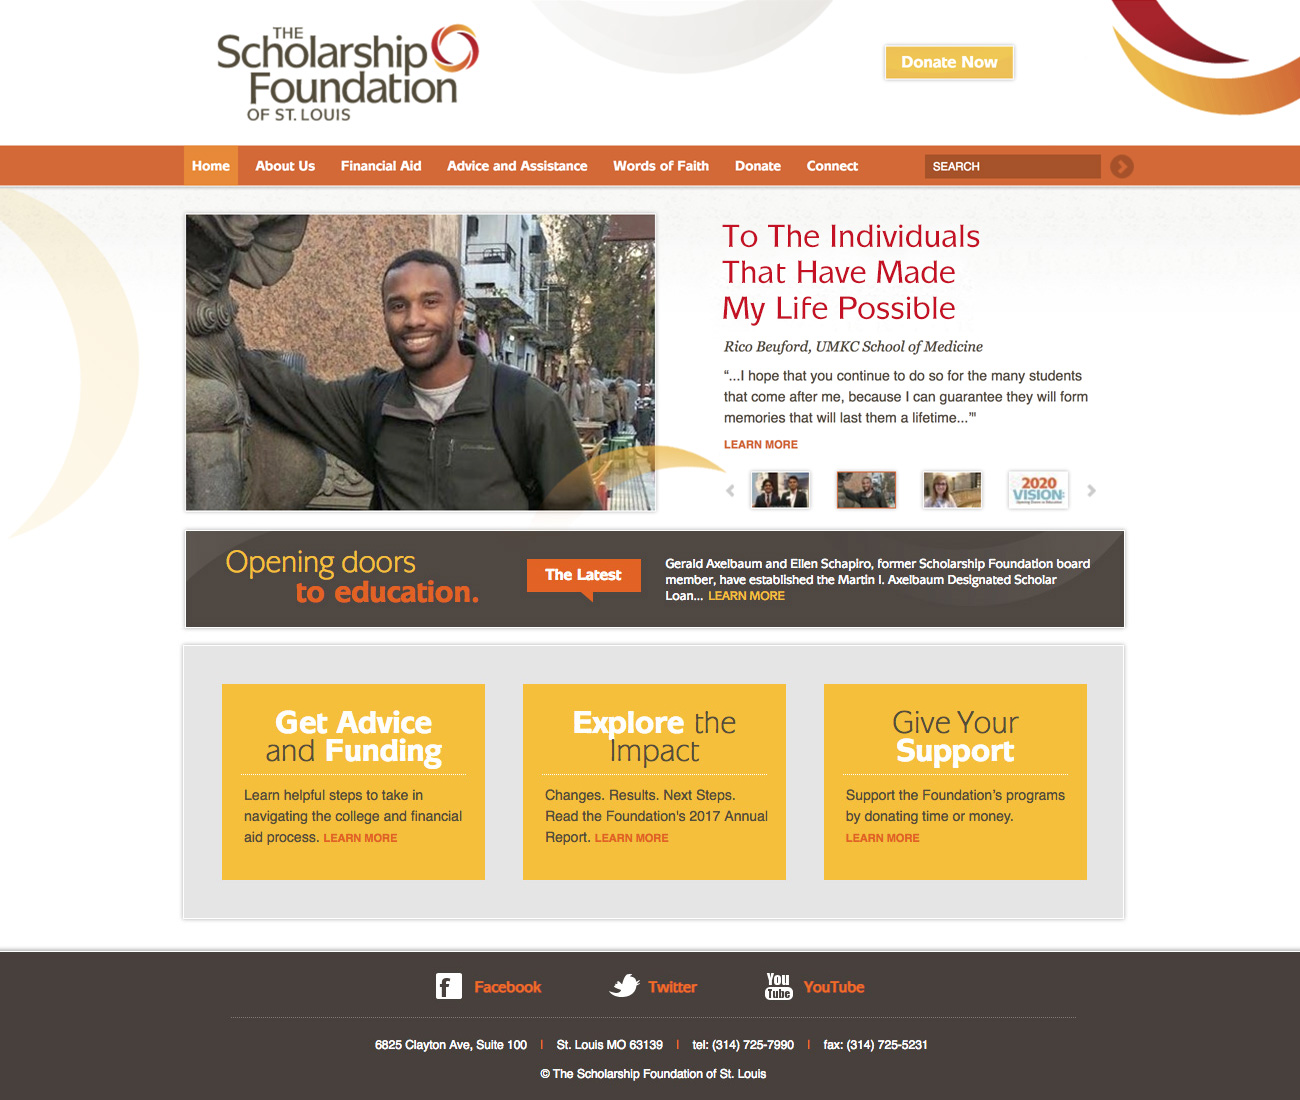 The Scholarship Foundation website home page